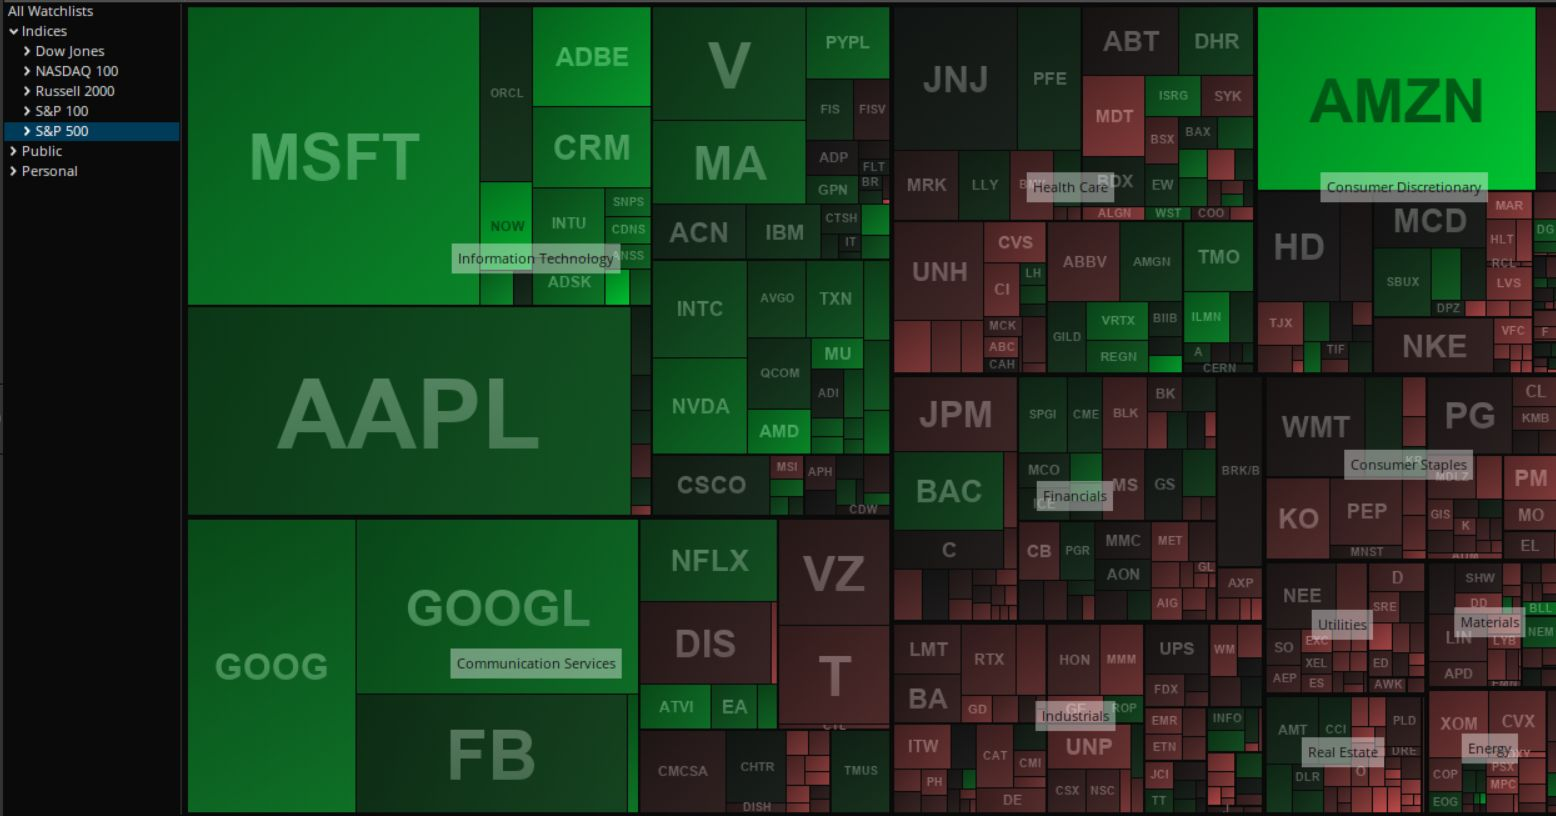 S&P 500 heat map